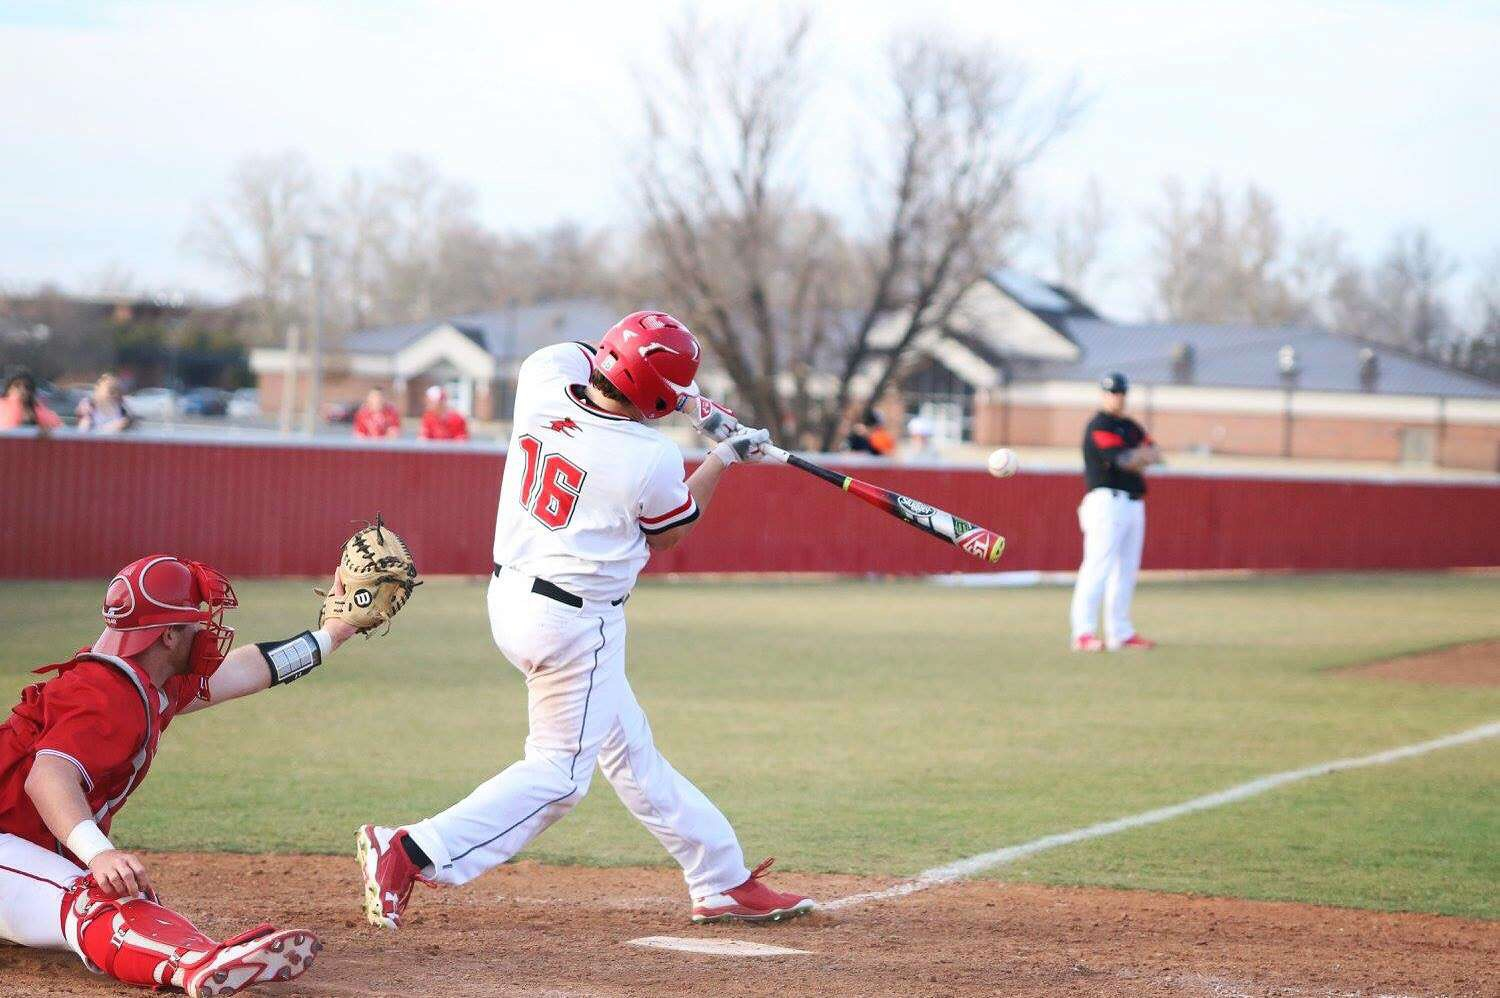 Sophomore Nathan Best makes contact with the baseball driving it down the third base line.